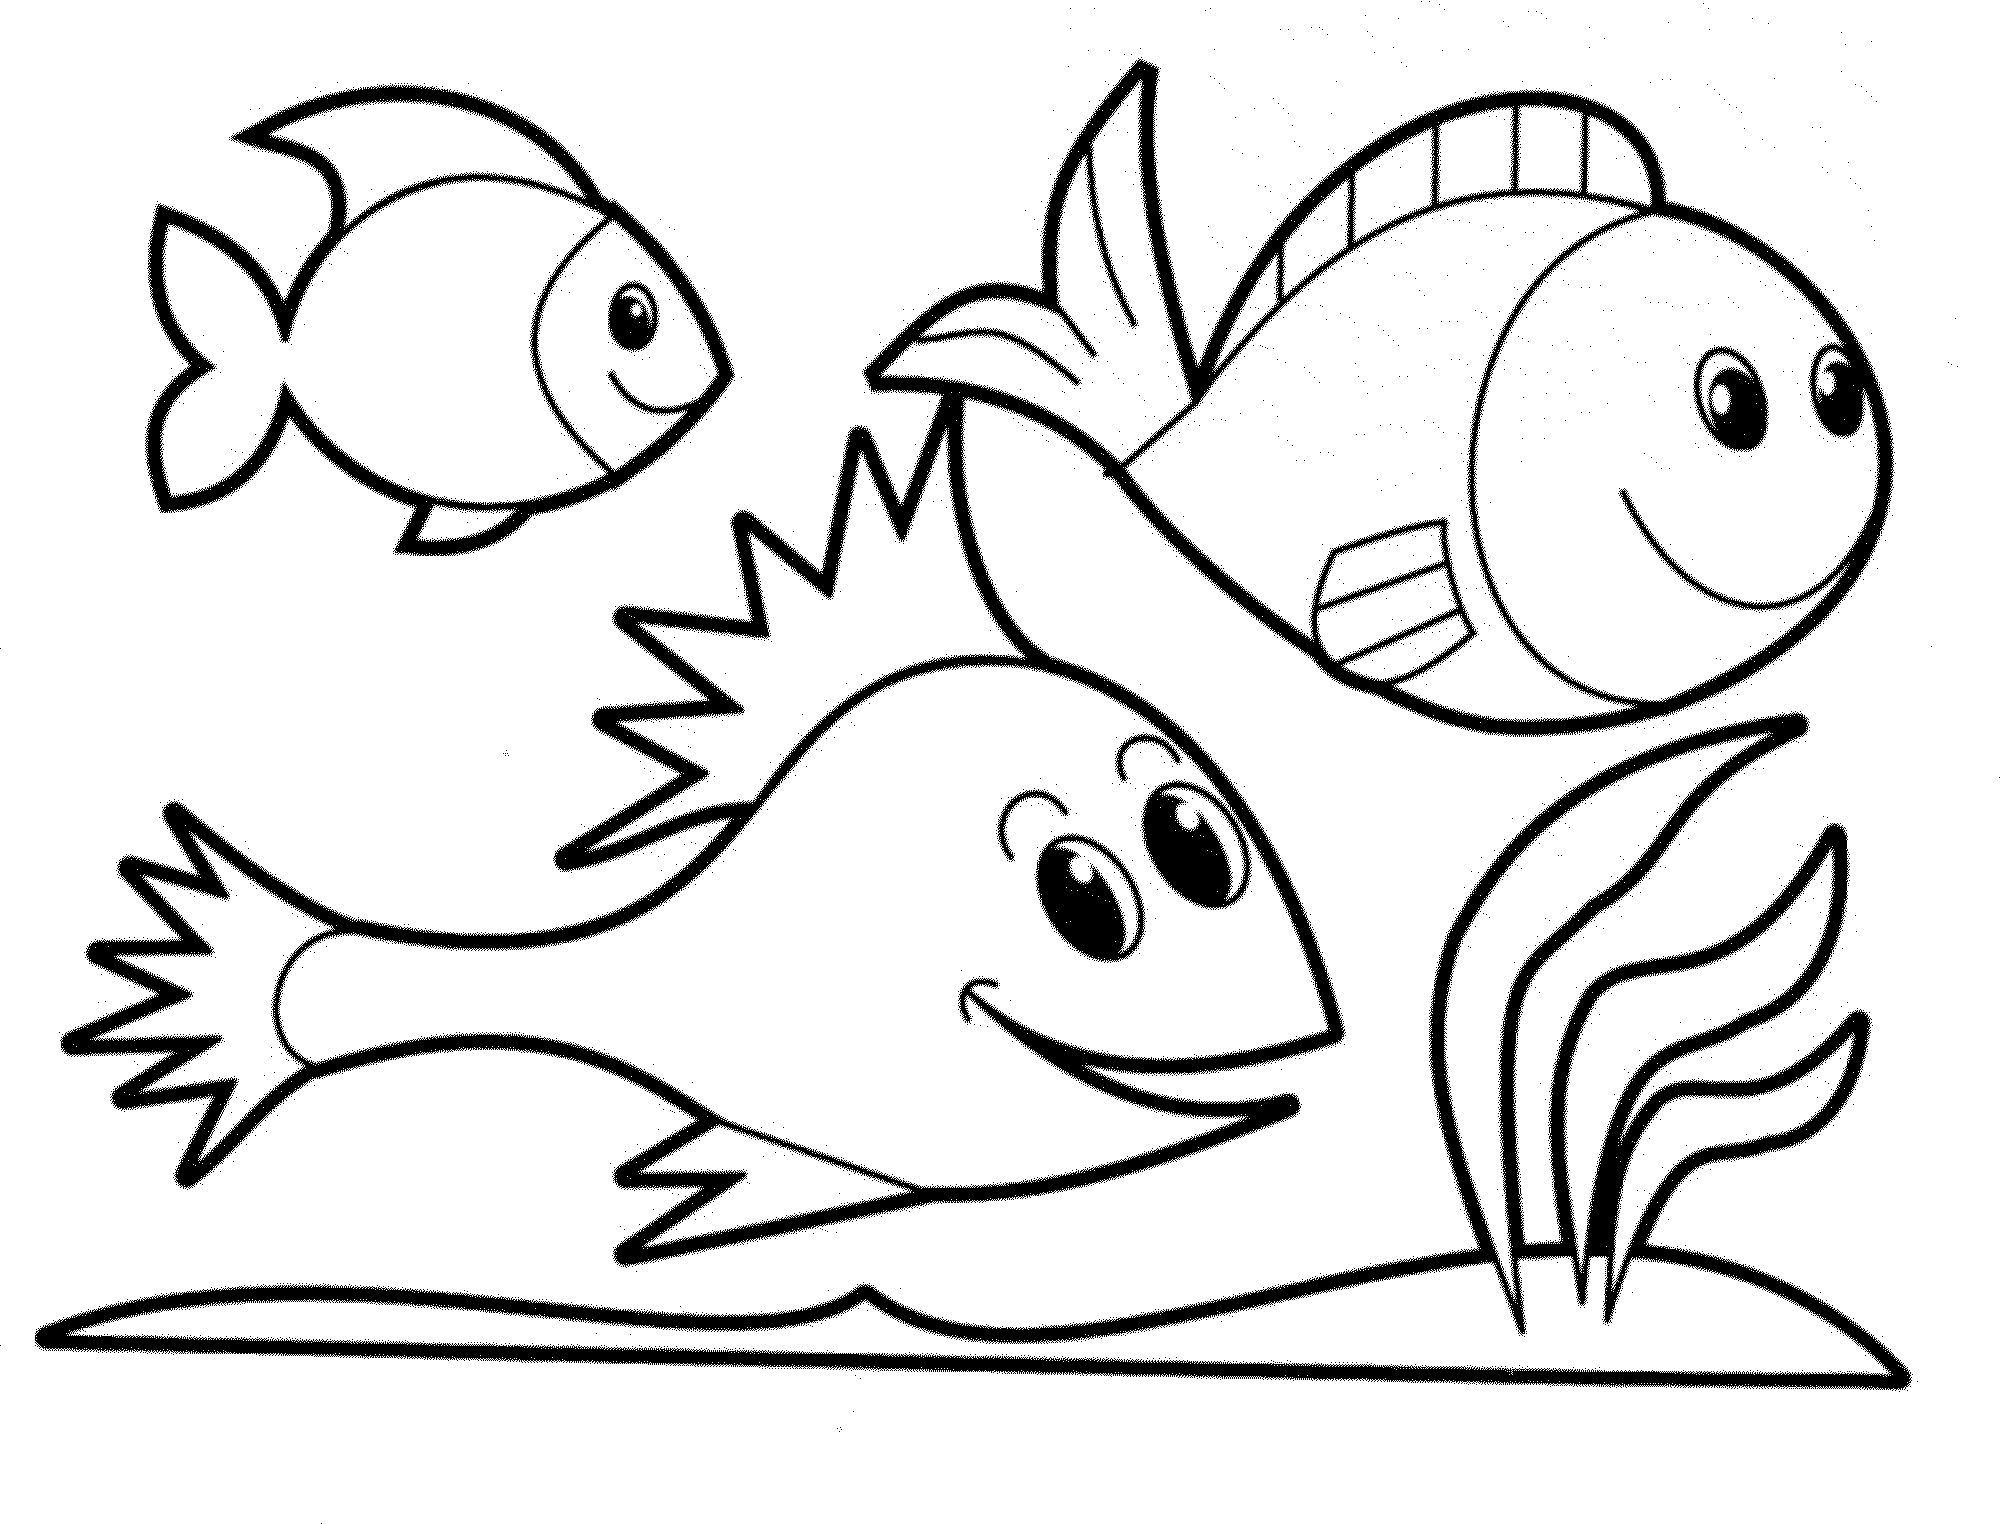 2000x1524 Fish Nature Coloring Page For Kids New Beautiful Plant Nature